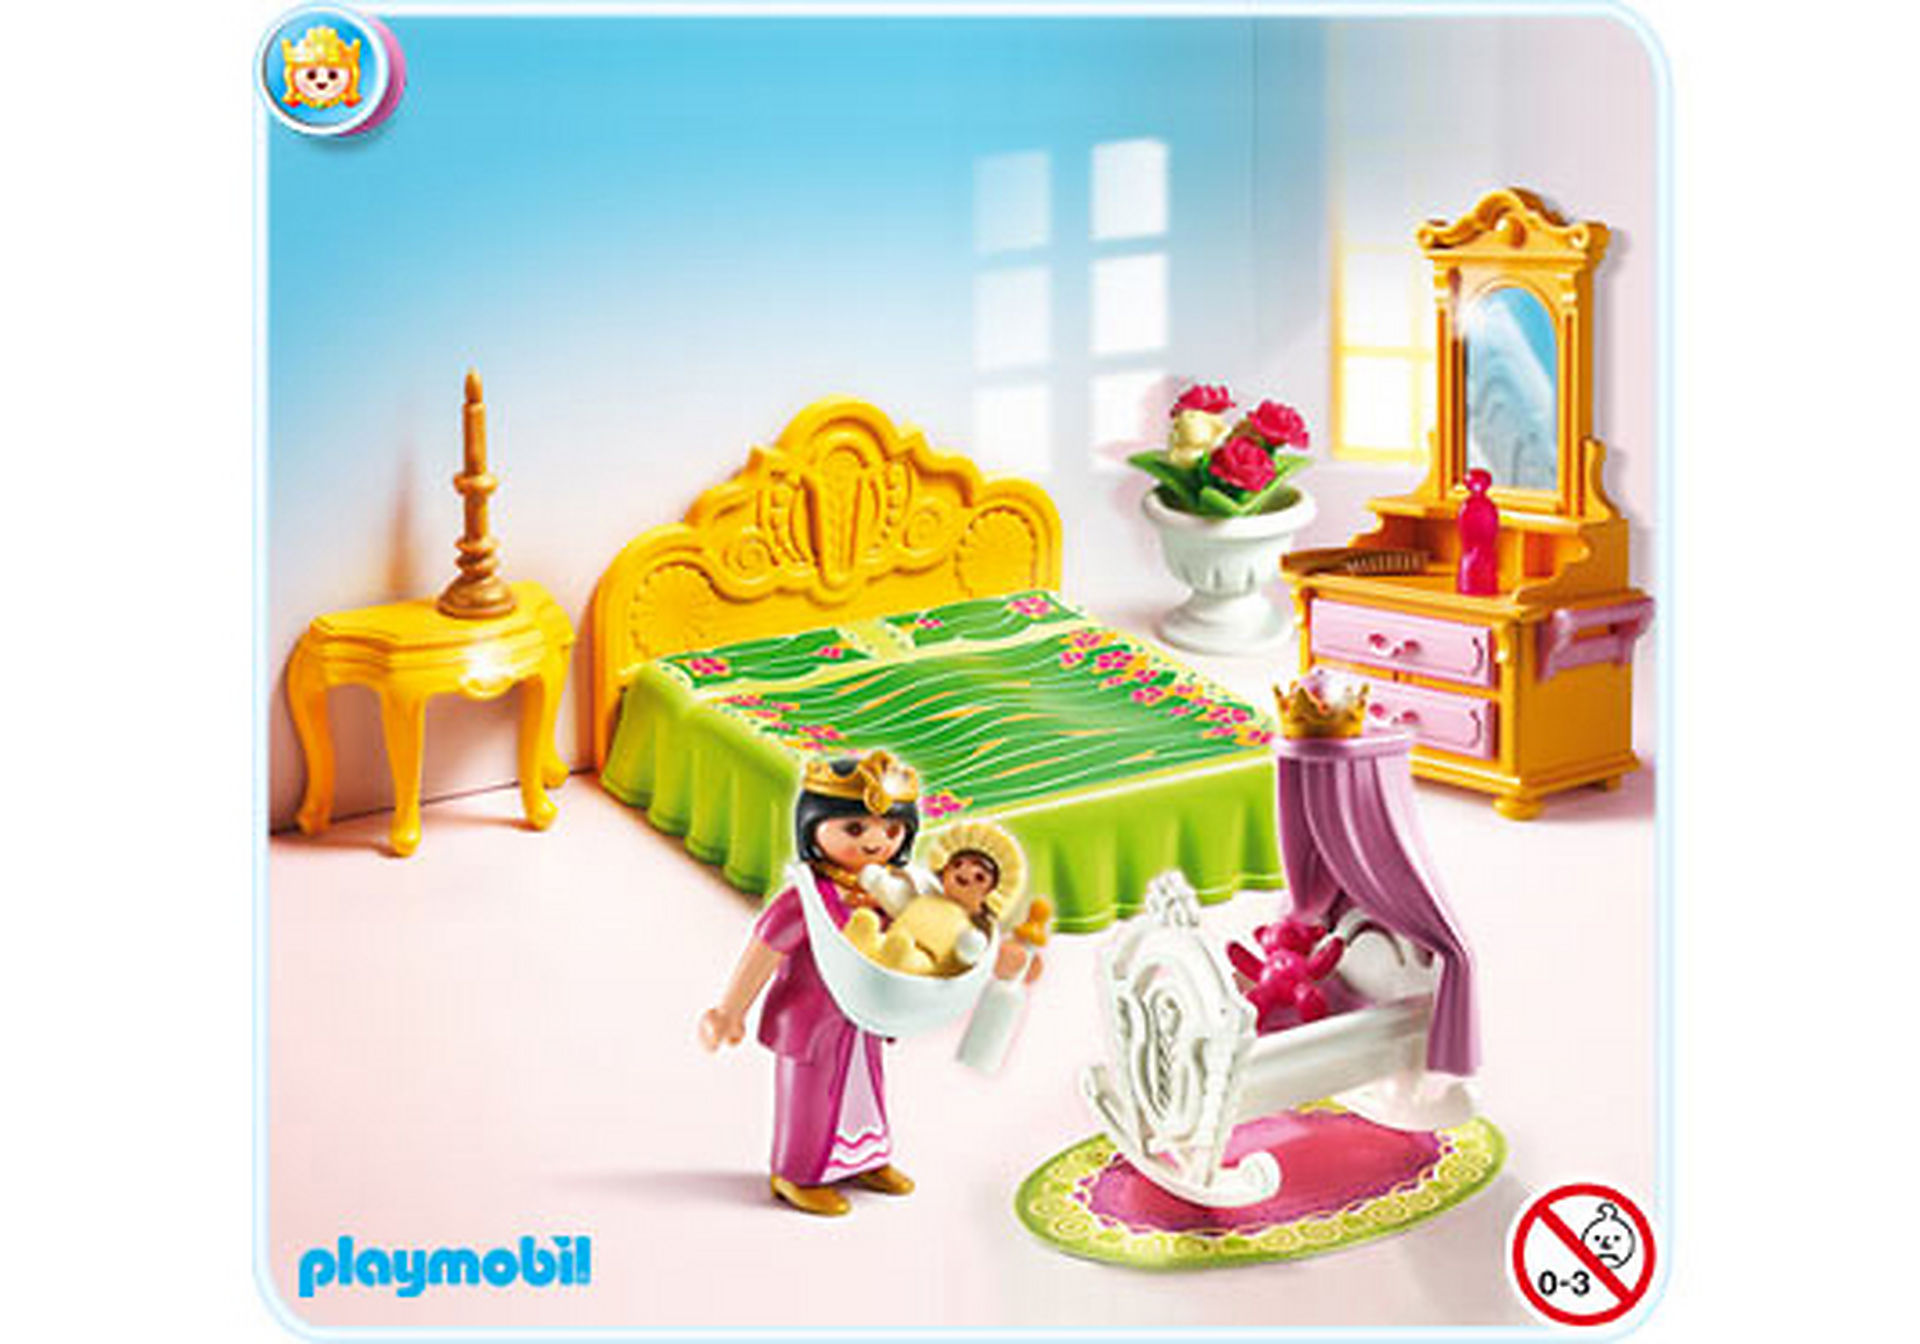 http://media.playmobil.com/i/playmobil/5146-A_product_detail/Schlafgemach mit Babywiege